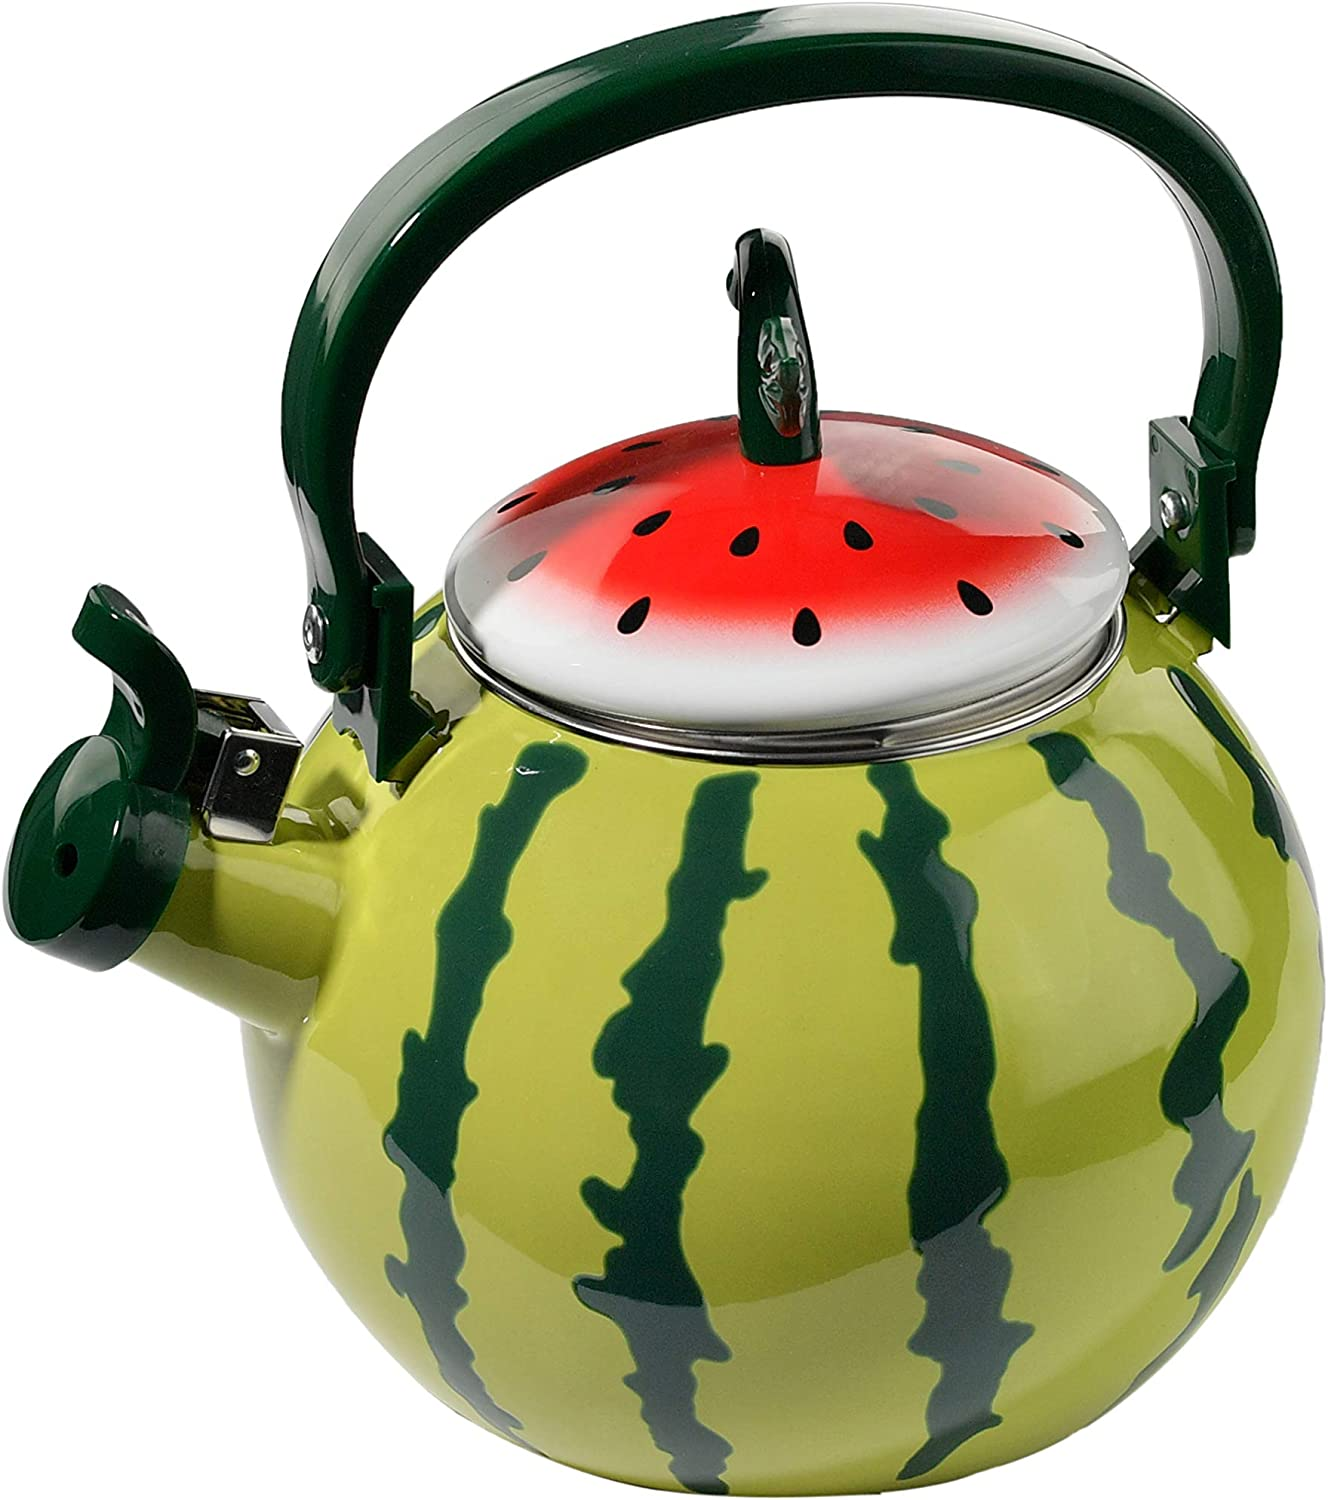 HOME-X Watermelon Whistling Tea Kettle, Cute Fruit Teapot, Kitchen Accessories/Decor